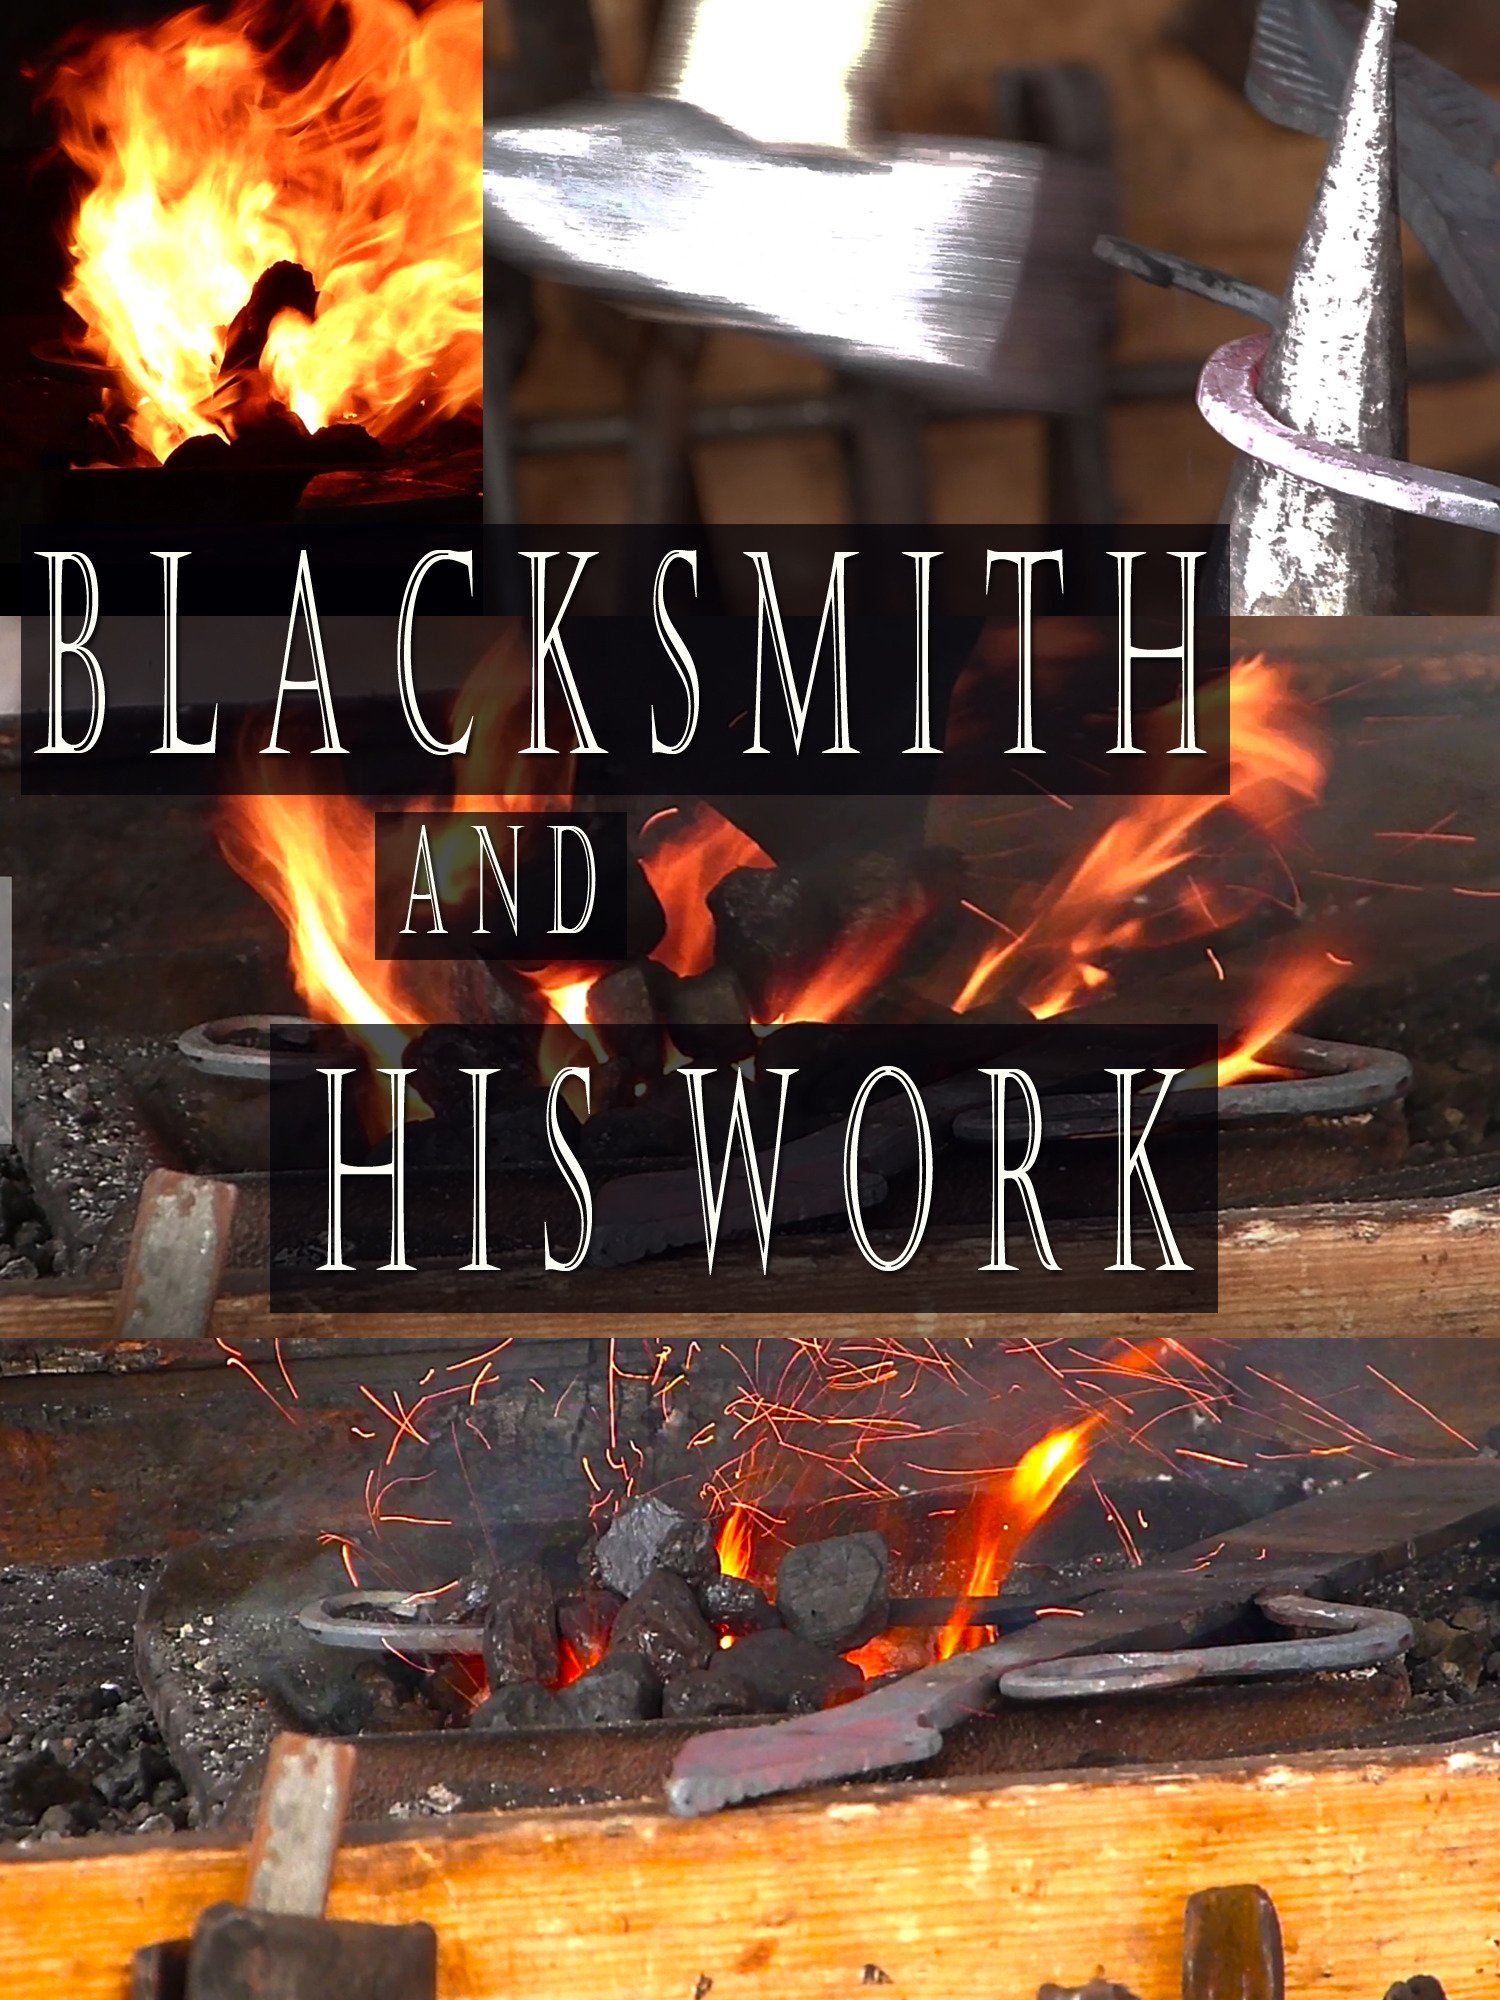 Blacksmith and his work